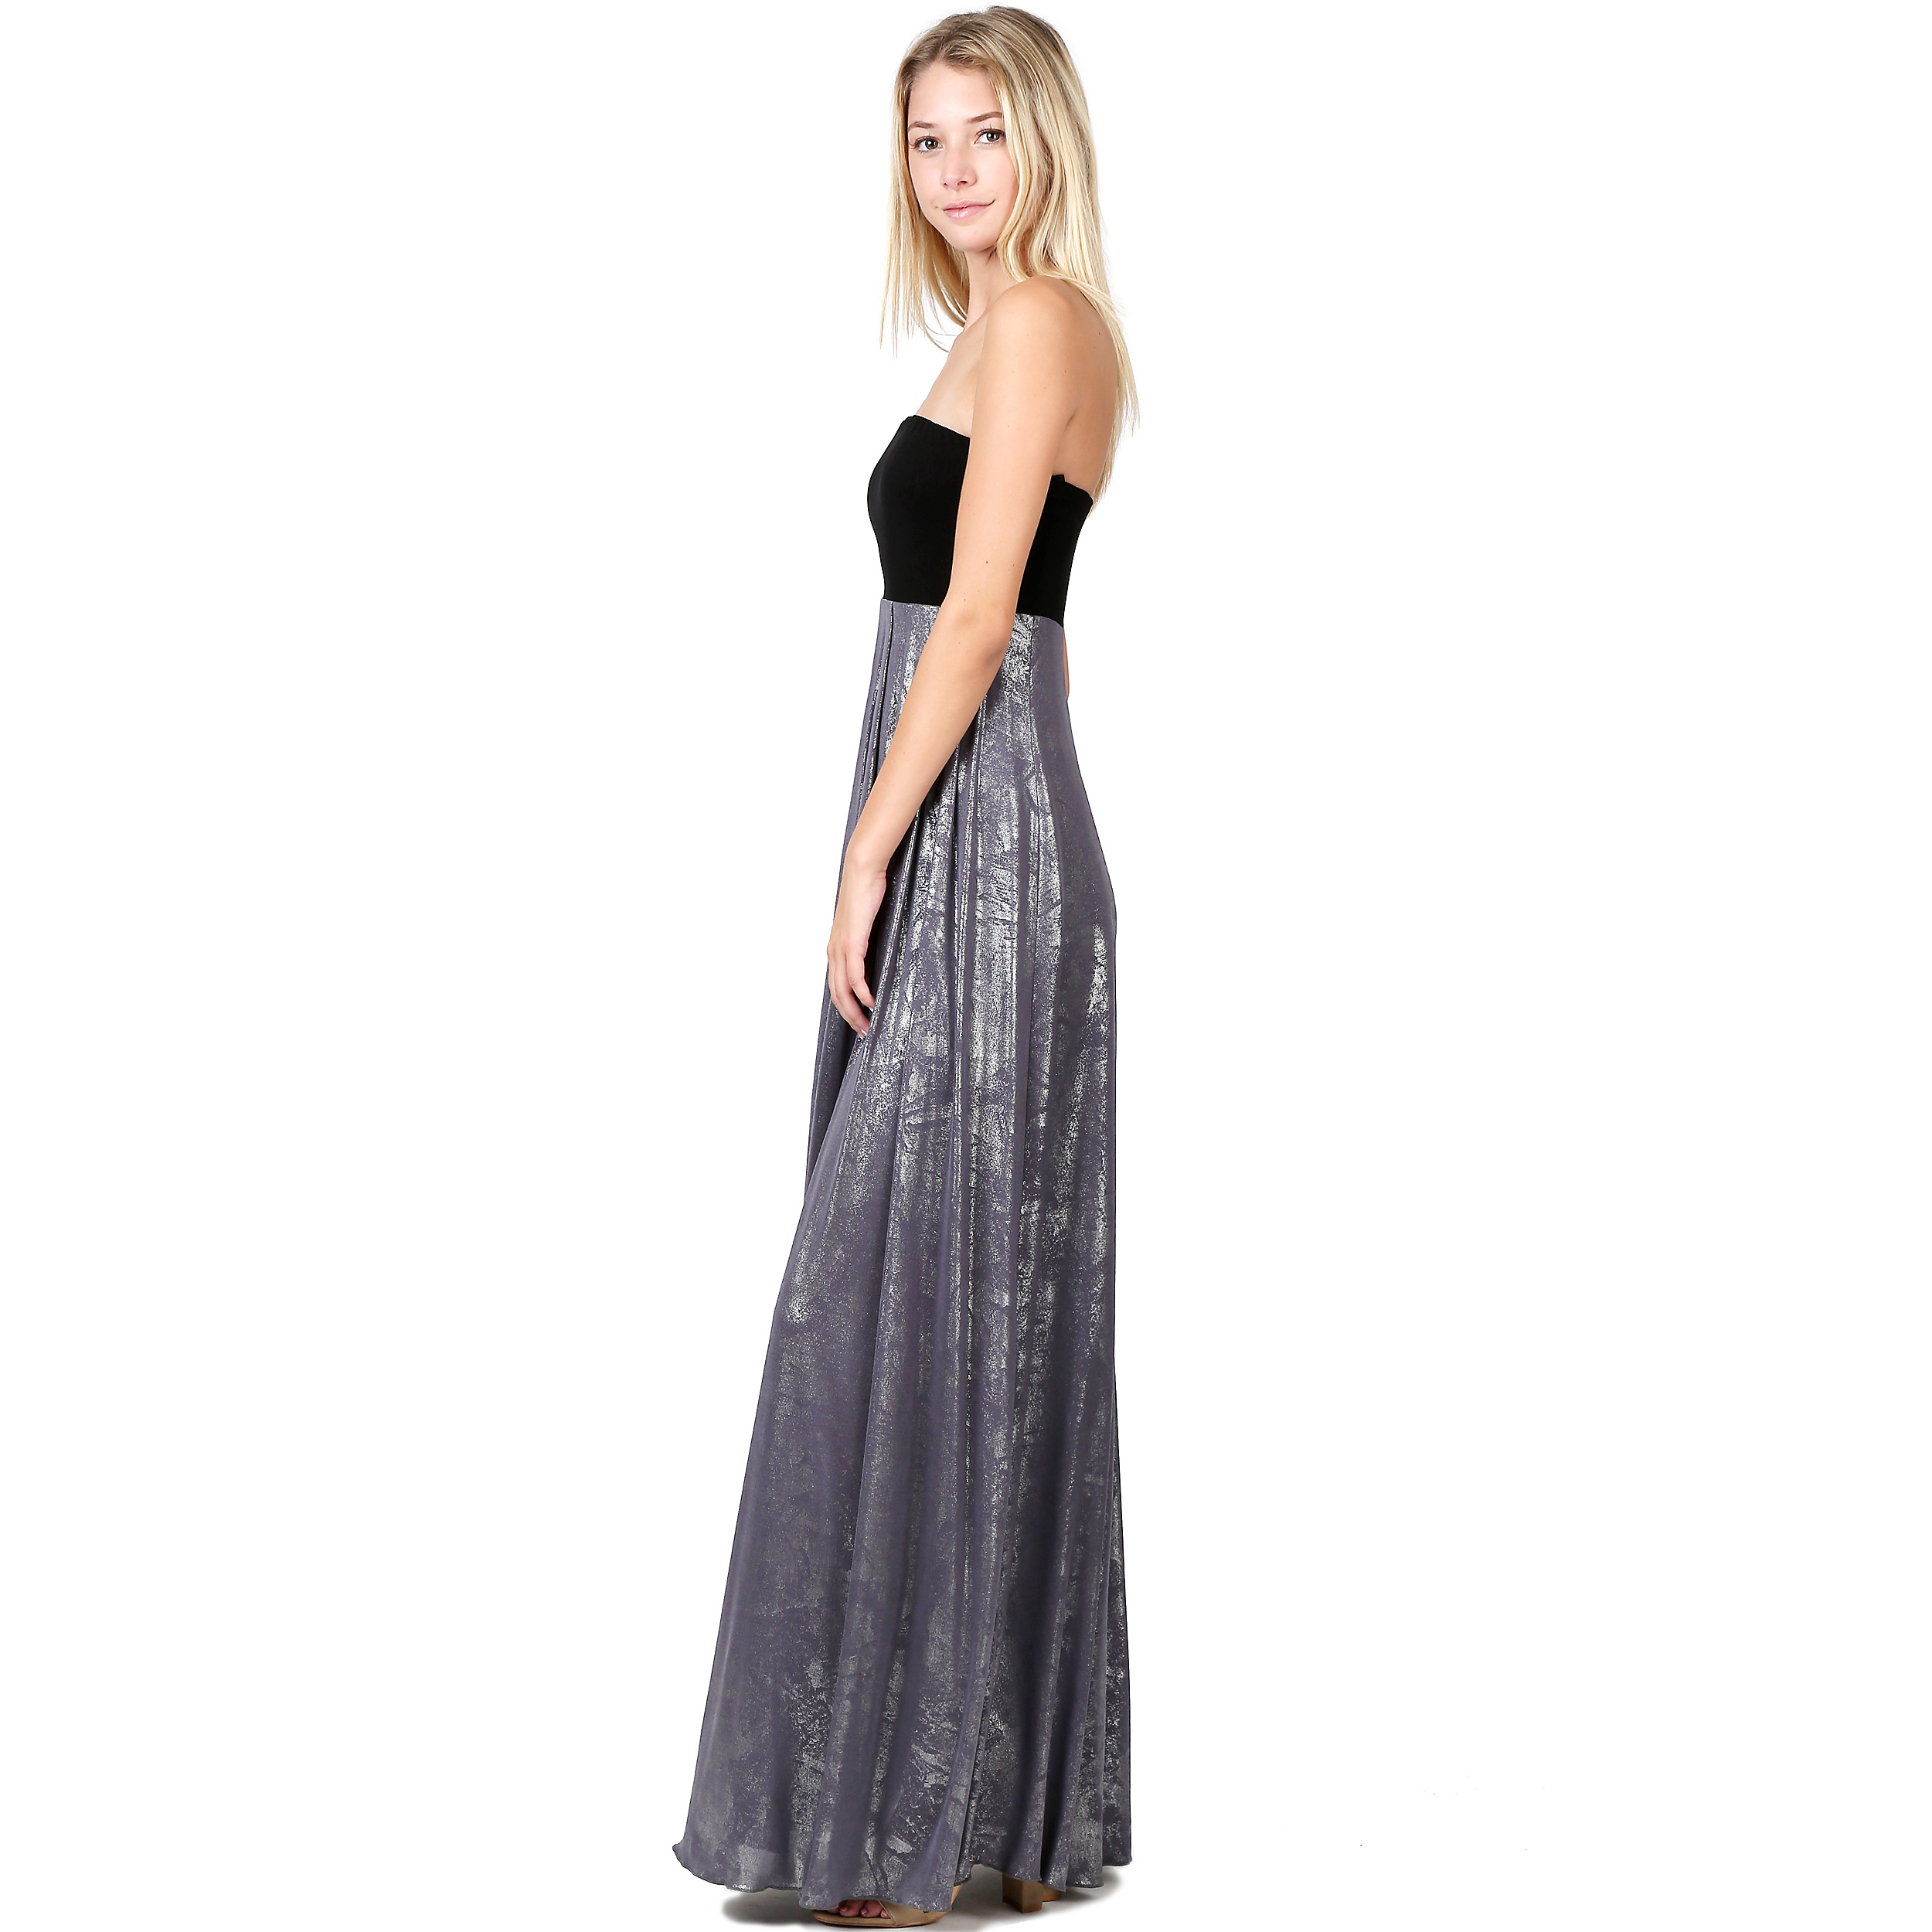 195400c96e Evanese Women s Cocktail Strapless Tube Metallic Print Maxi Long Dress is a  gorgeous addition to your closet. This long dress features contrast  strapless ...